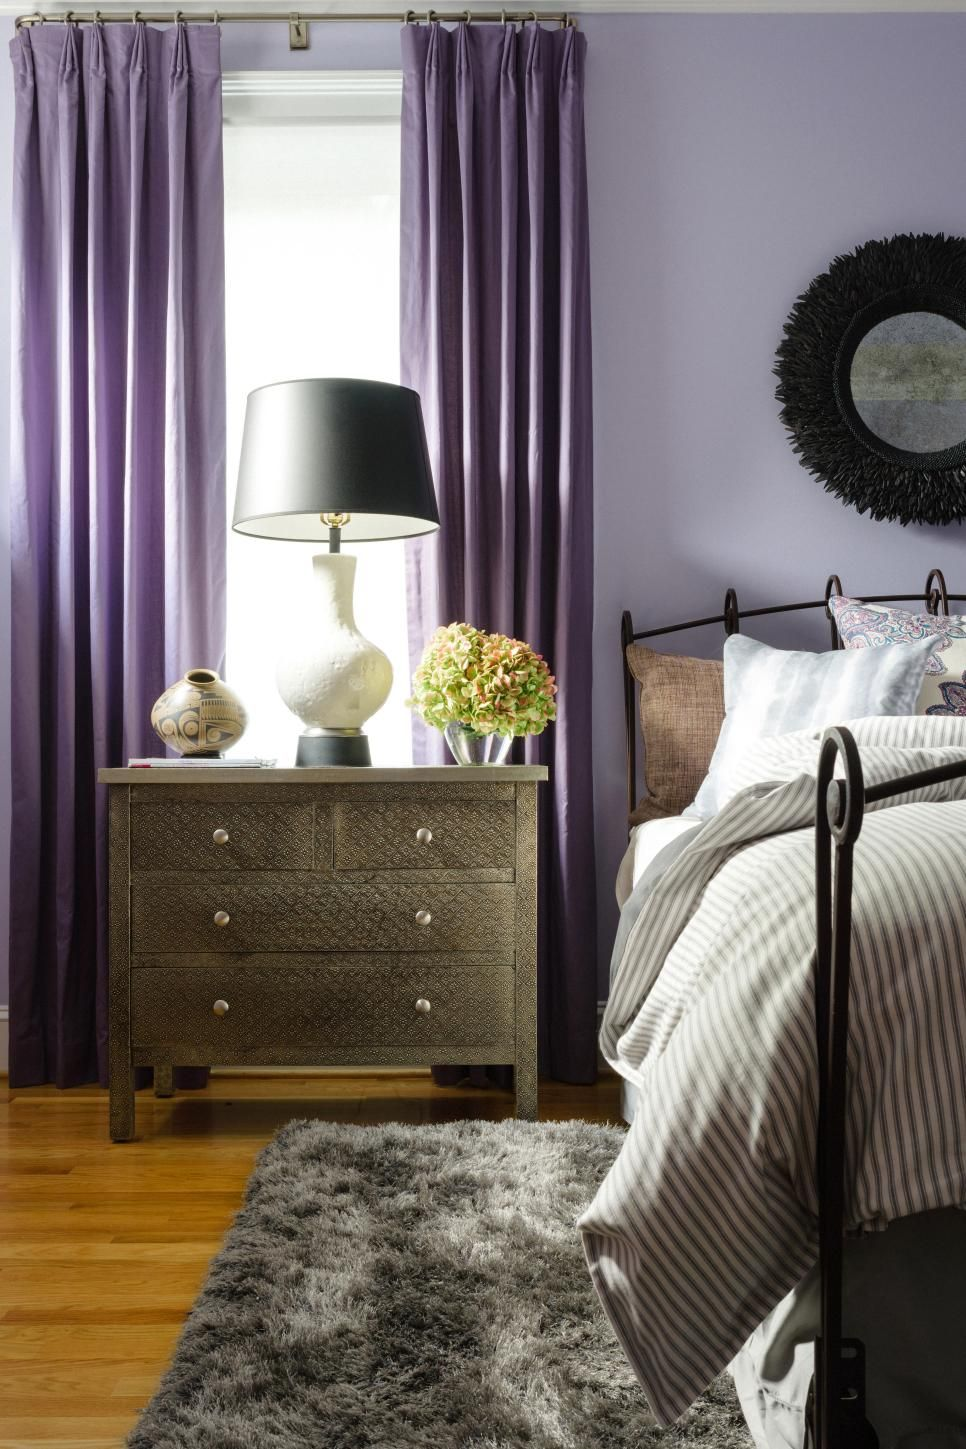 To Anchor The Light Lavender Walls, Black Touches Were Added In The Form Of  Paper Lampshades, An Iron Sleigh Bed And A Coconut Shell Mirror.